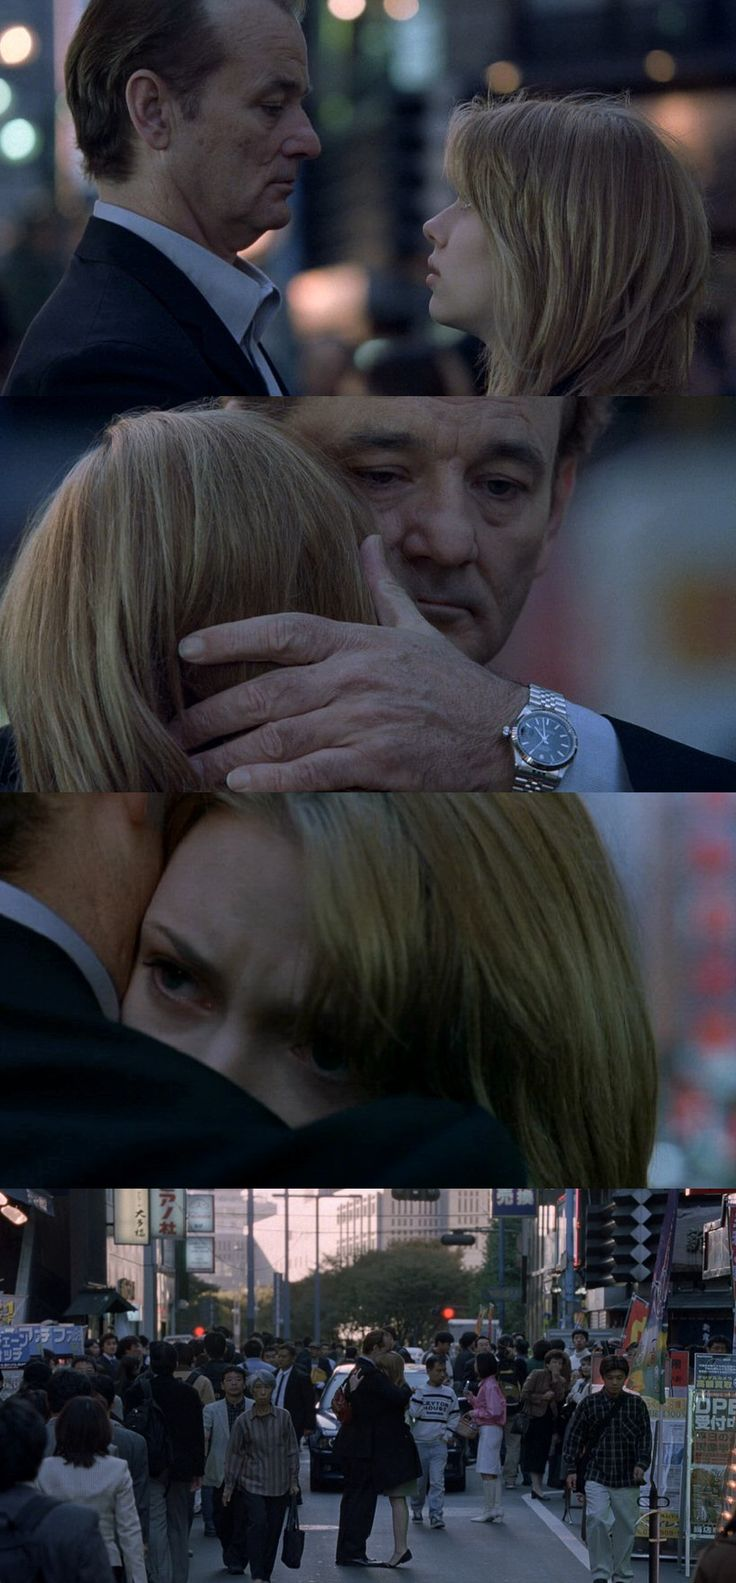 Lost in Translation ~ I love this film so much for its magical awareness even in the midst of chaos.